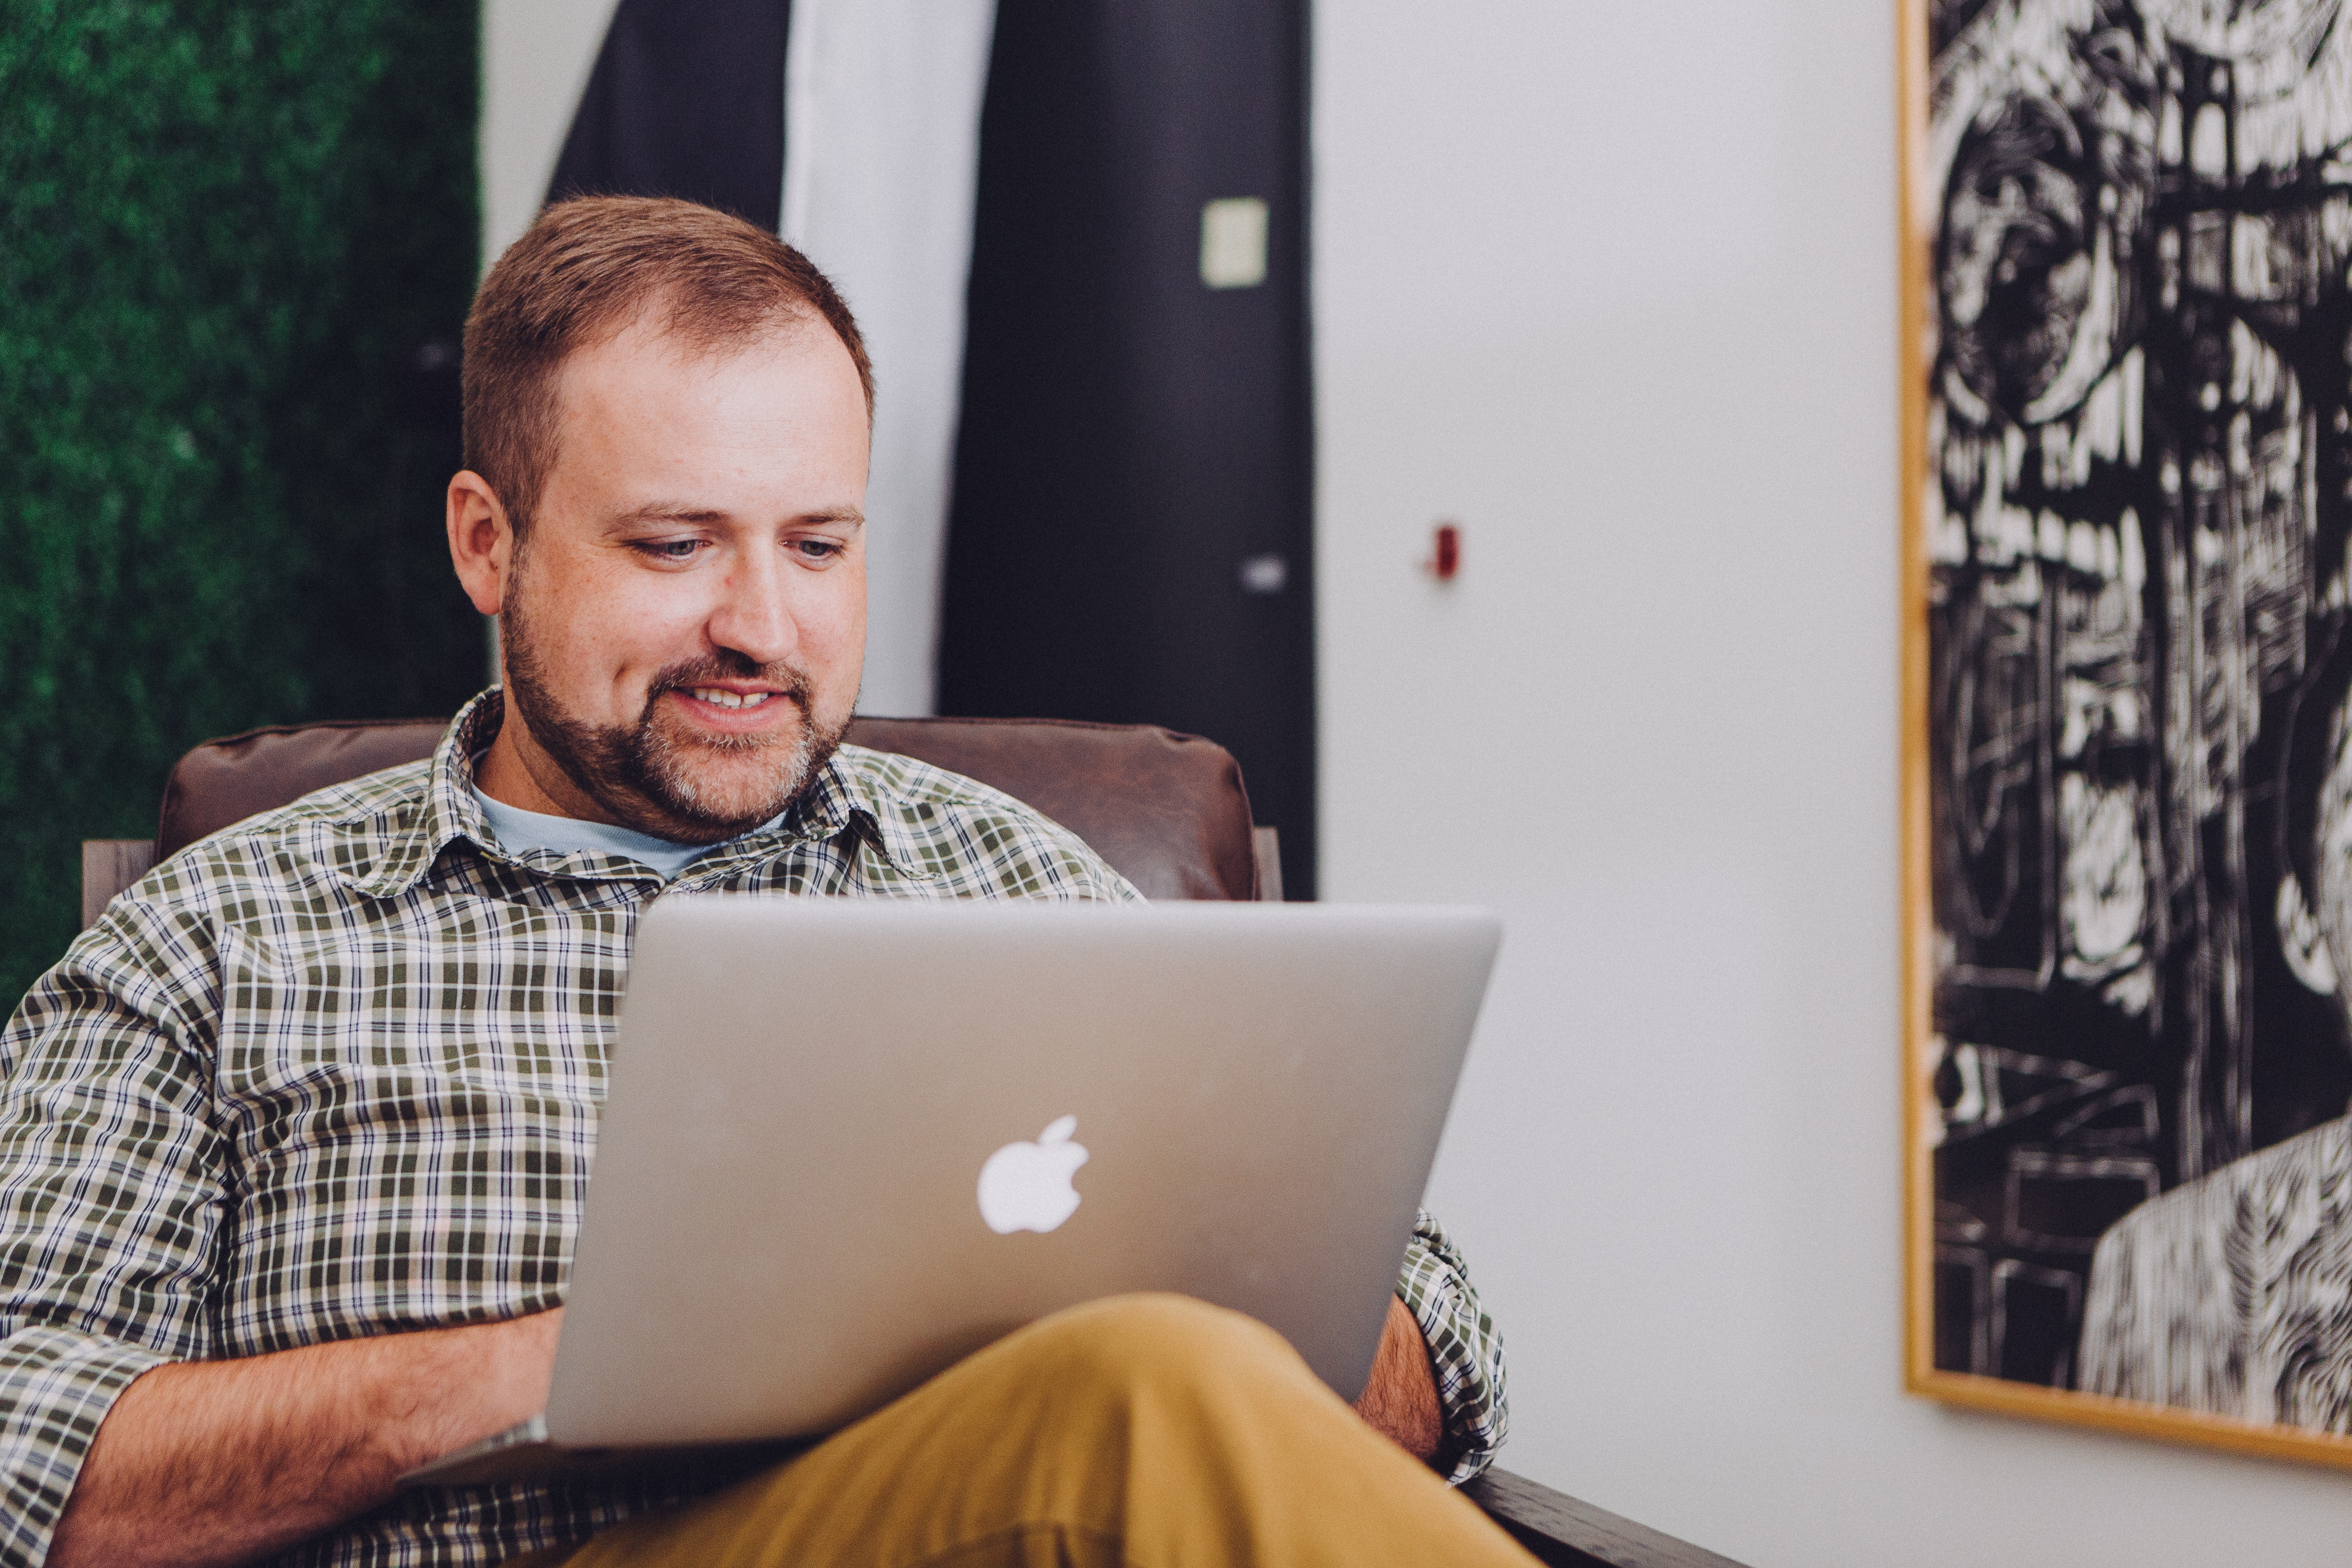 man talking to an online therapist on the computer during an online therapy session